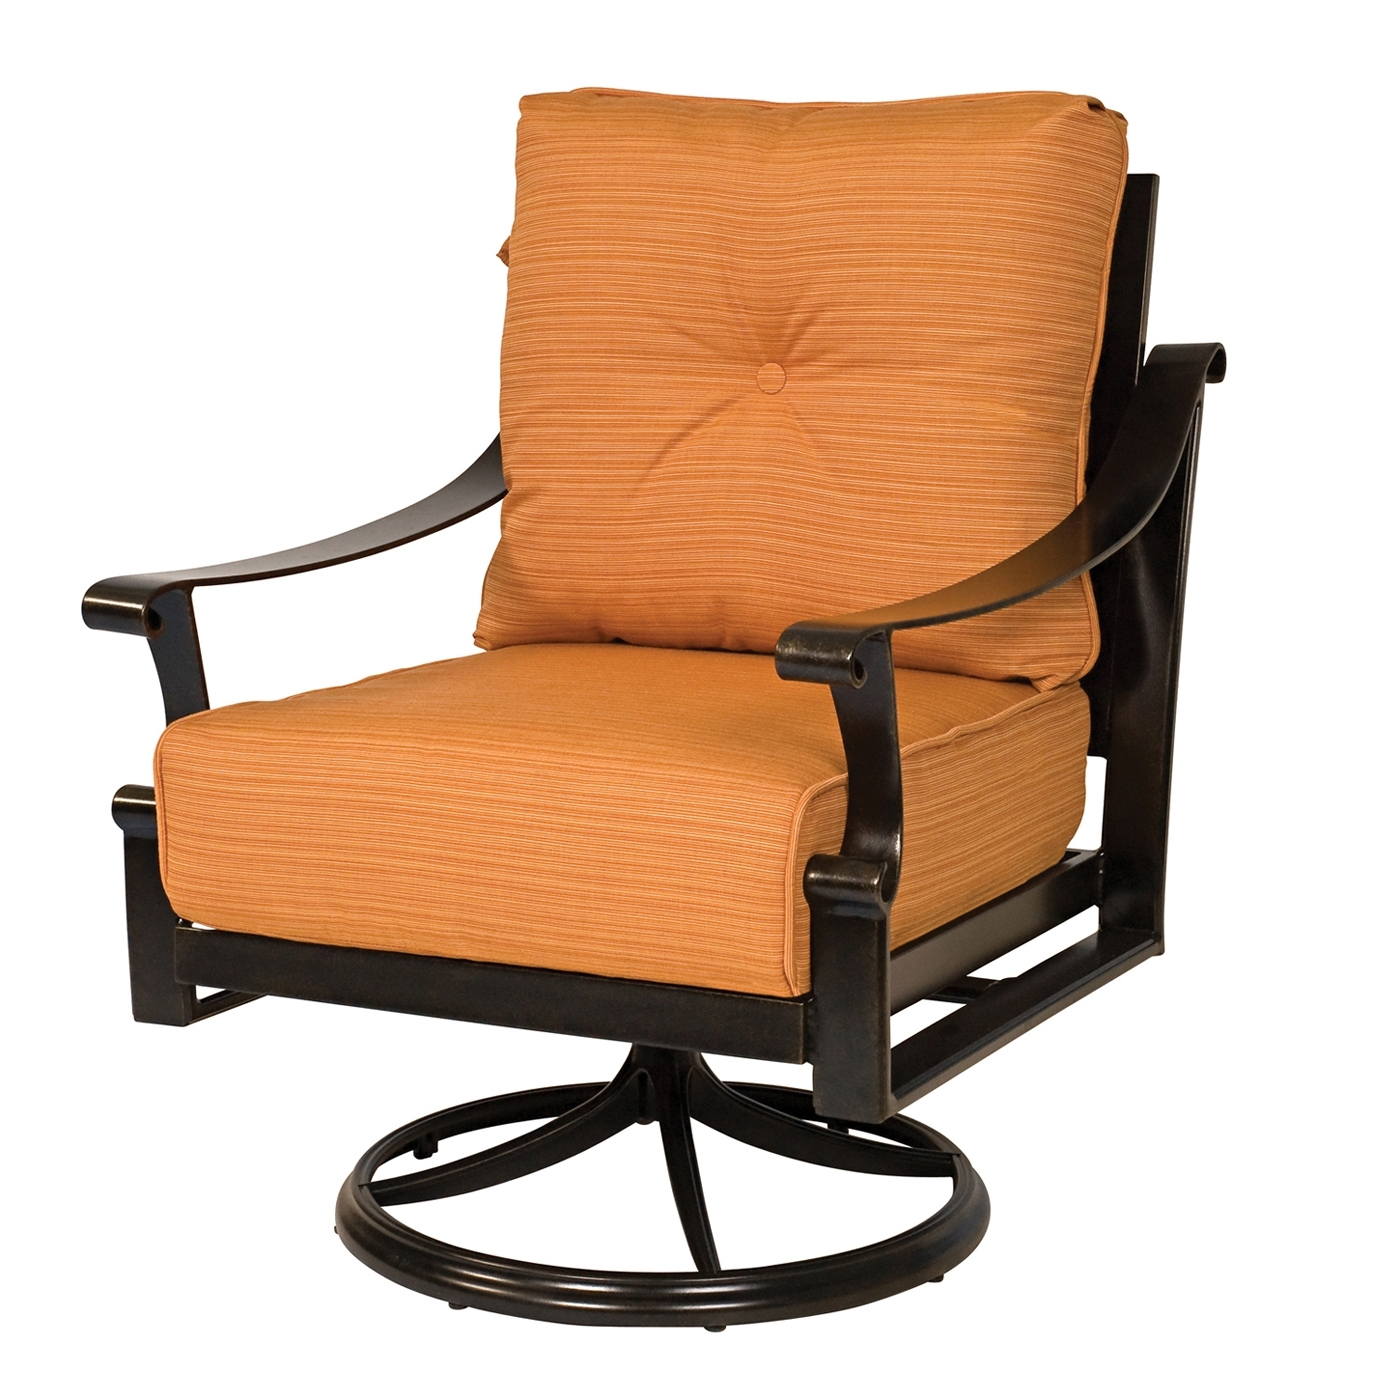 Inspirational Swivel Rocker Patio Chair Dmsgb Mauriciohm Chairs Sale For Trendy Patio Rocking Swivel Chairs (View 5 of 20)